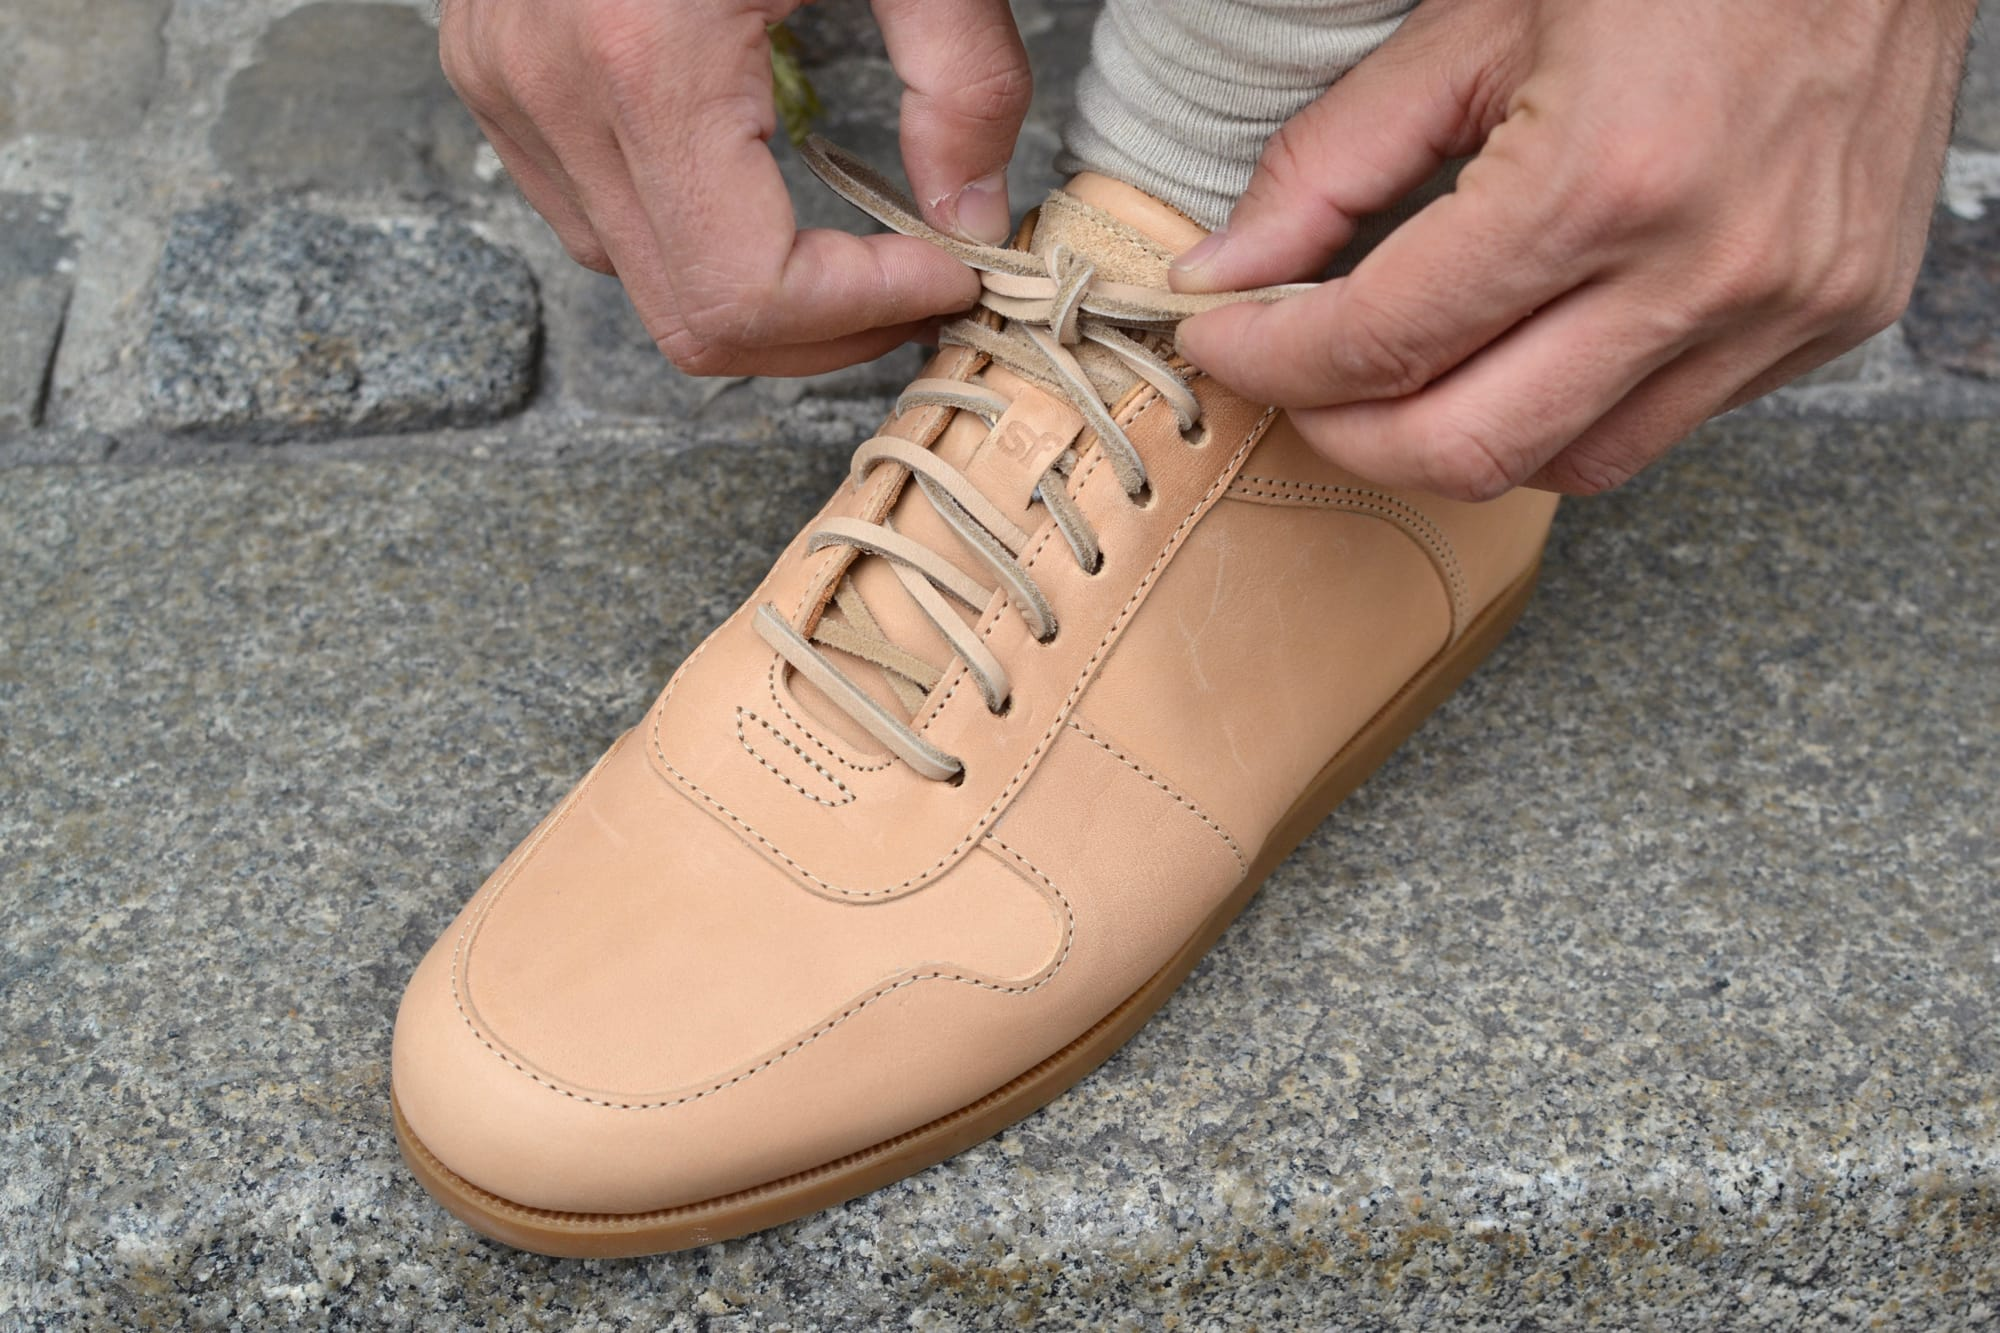 Standard Fair natural leather shoes model sport camp made in USA Maine shoes sneakers en cuir naturel et à potentiel de patine